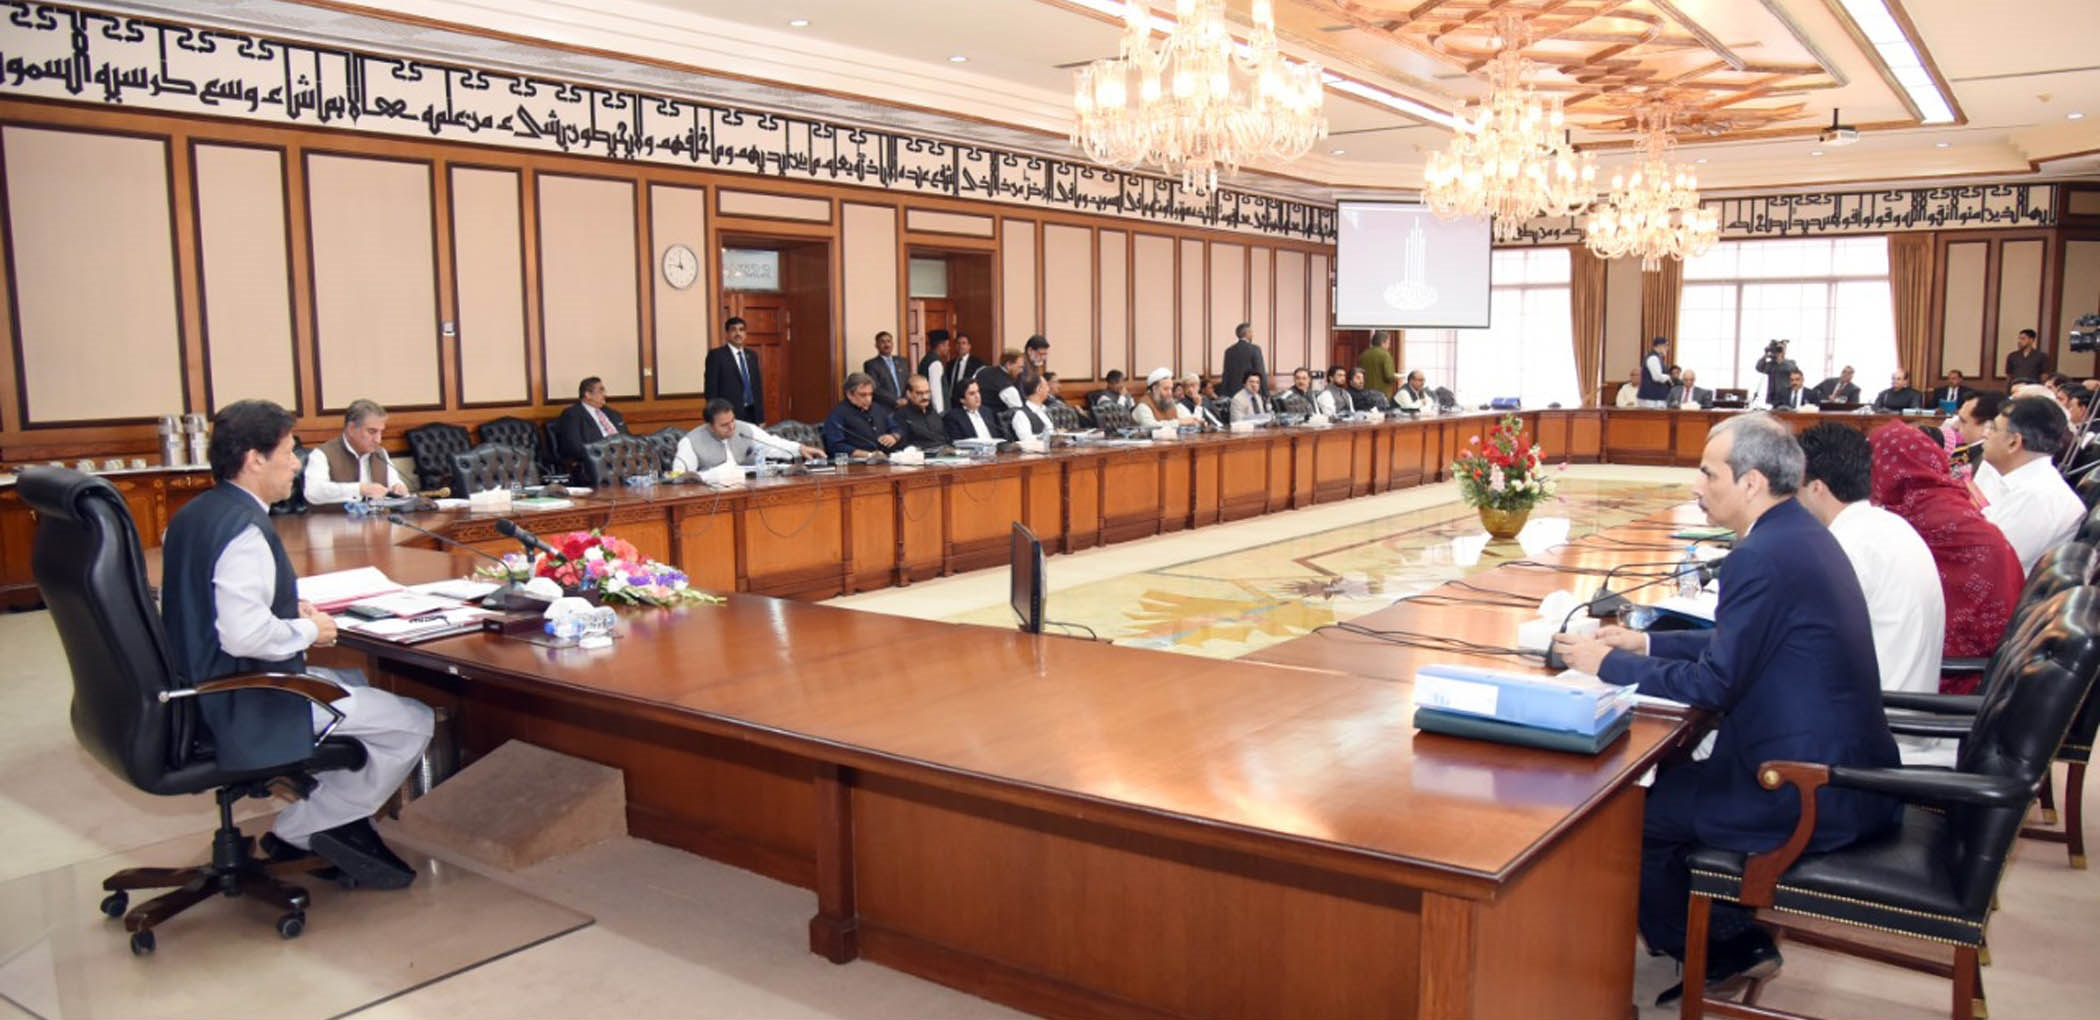 Prime Minister Imran Khan chairs meeting of the Federal Cabinet at PM Office Islamabad. PHOTO: REUTERS